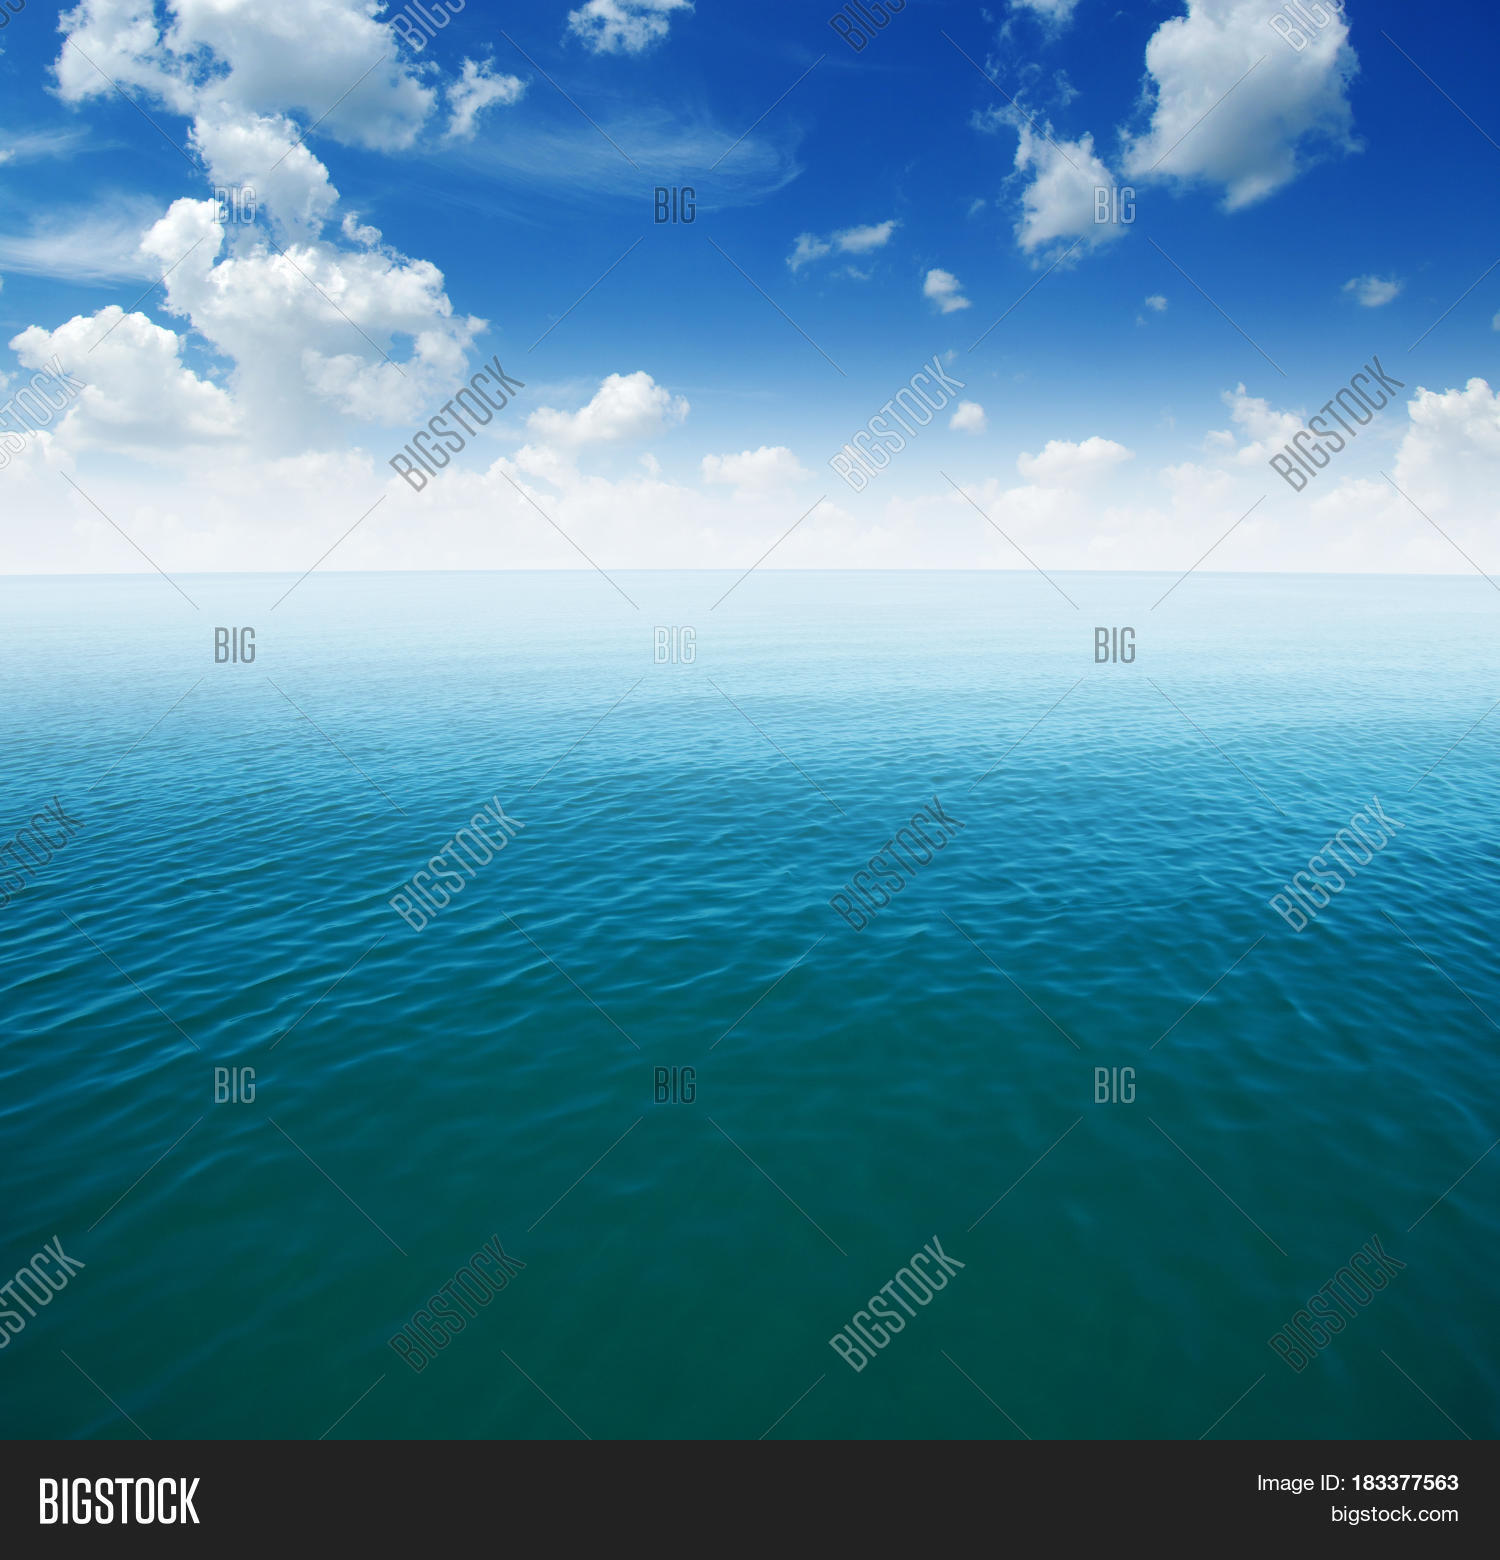 1366x768 blue sea surface-#27